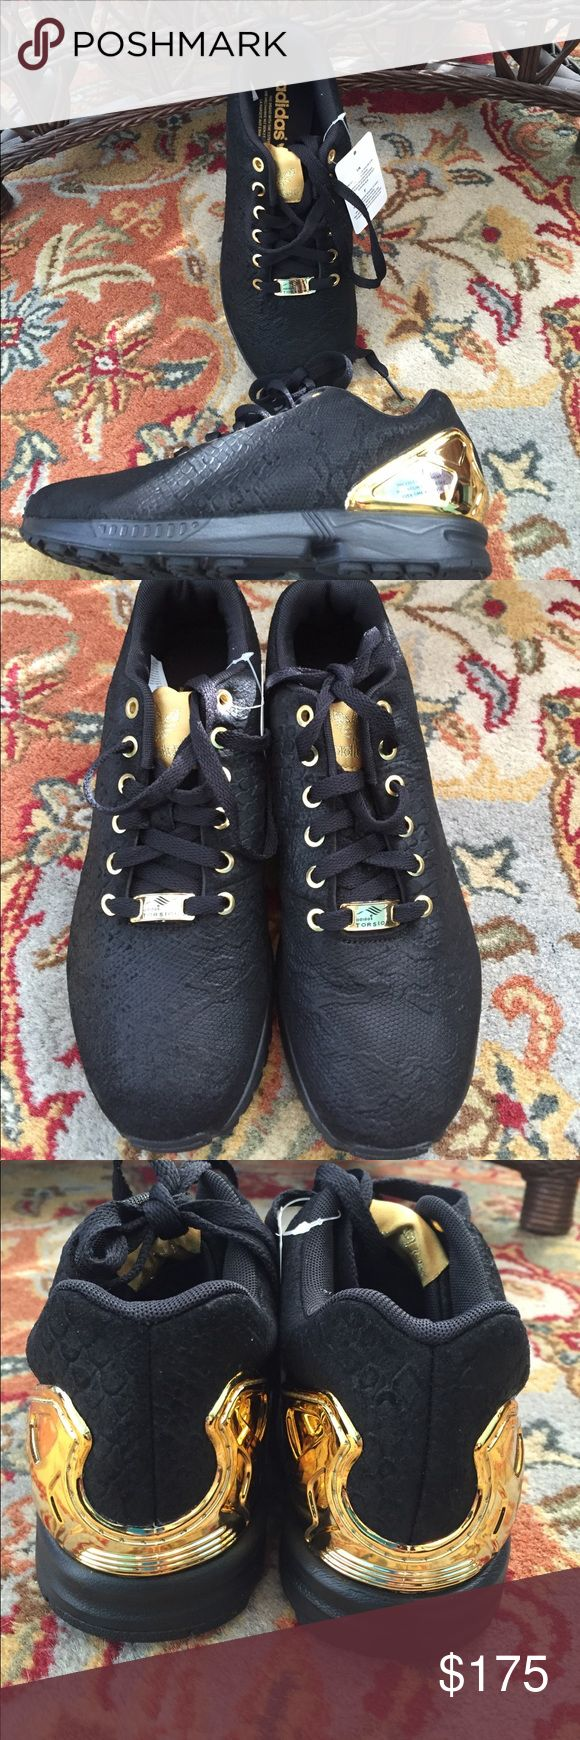 Wow! Adidas Torsion ZX Flux black gold sneakers! WILL TAKE A REASONABLE OFFER!!!    Brand new with tags and stickers. No box. Black reptile embossed nubuck. Gold accents. Men's size 8. Adidas Shoes Sneakers